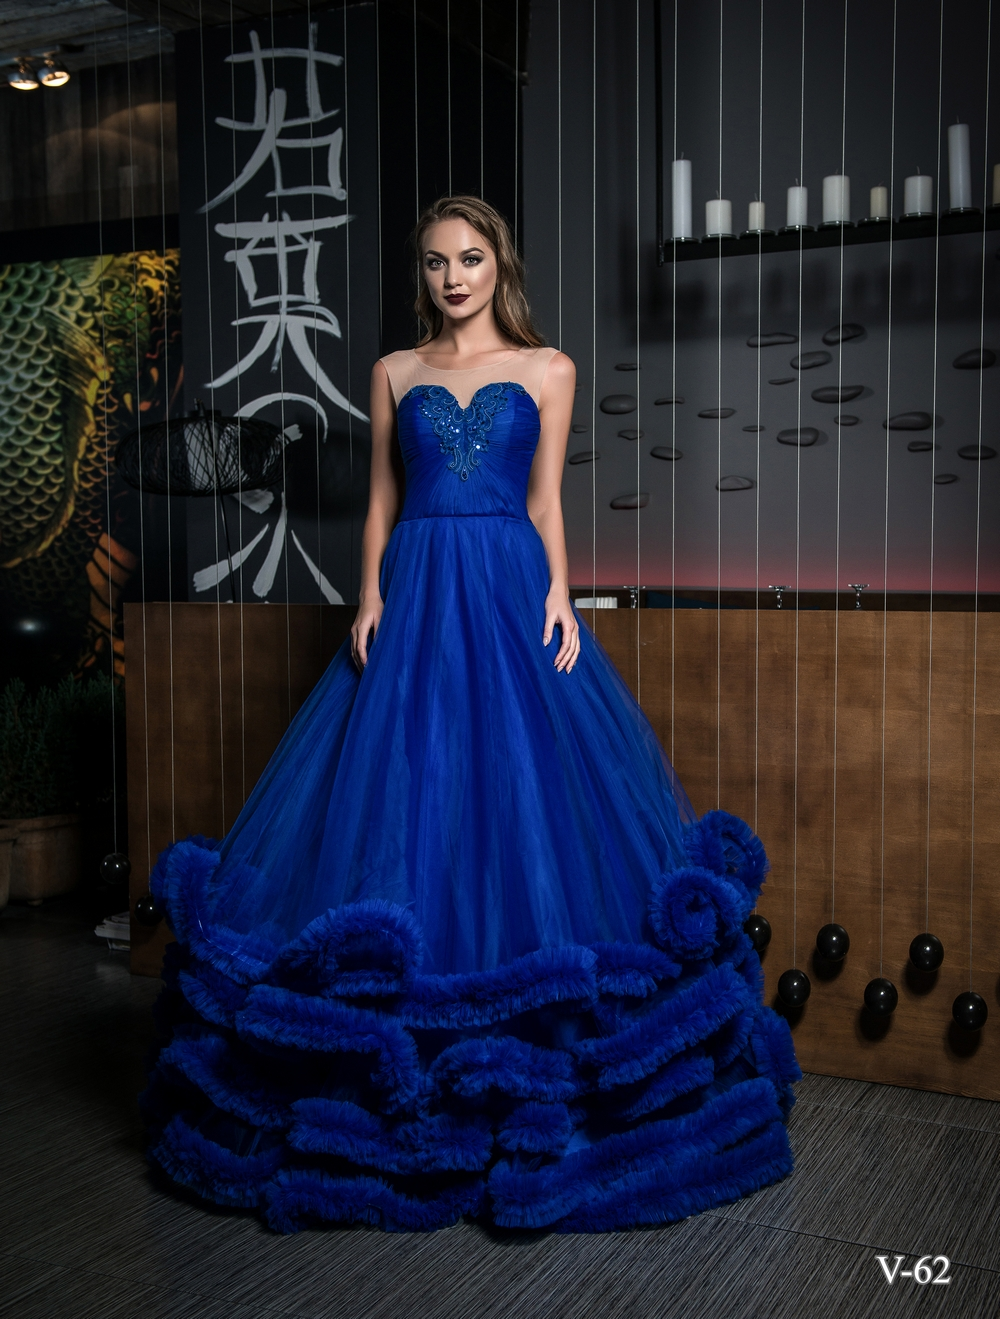 Evening dress V-62 on wholesale